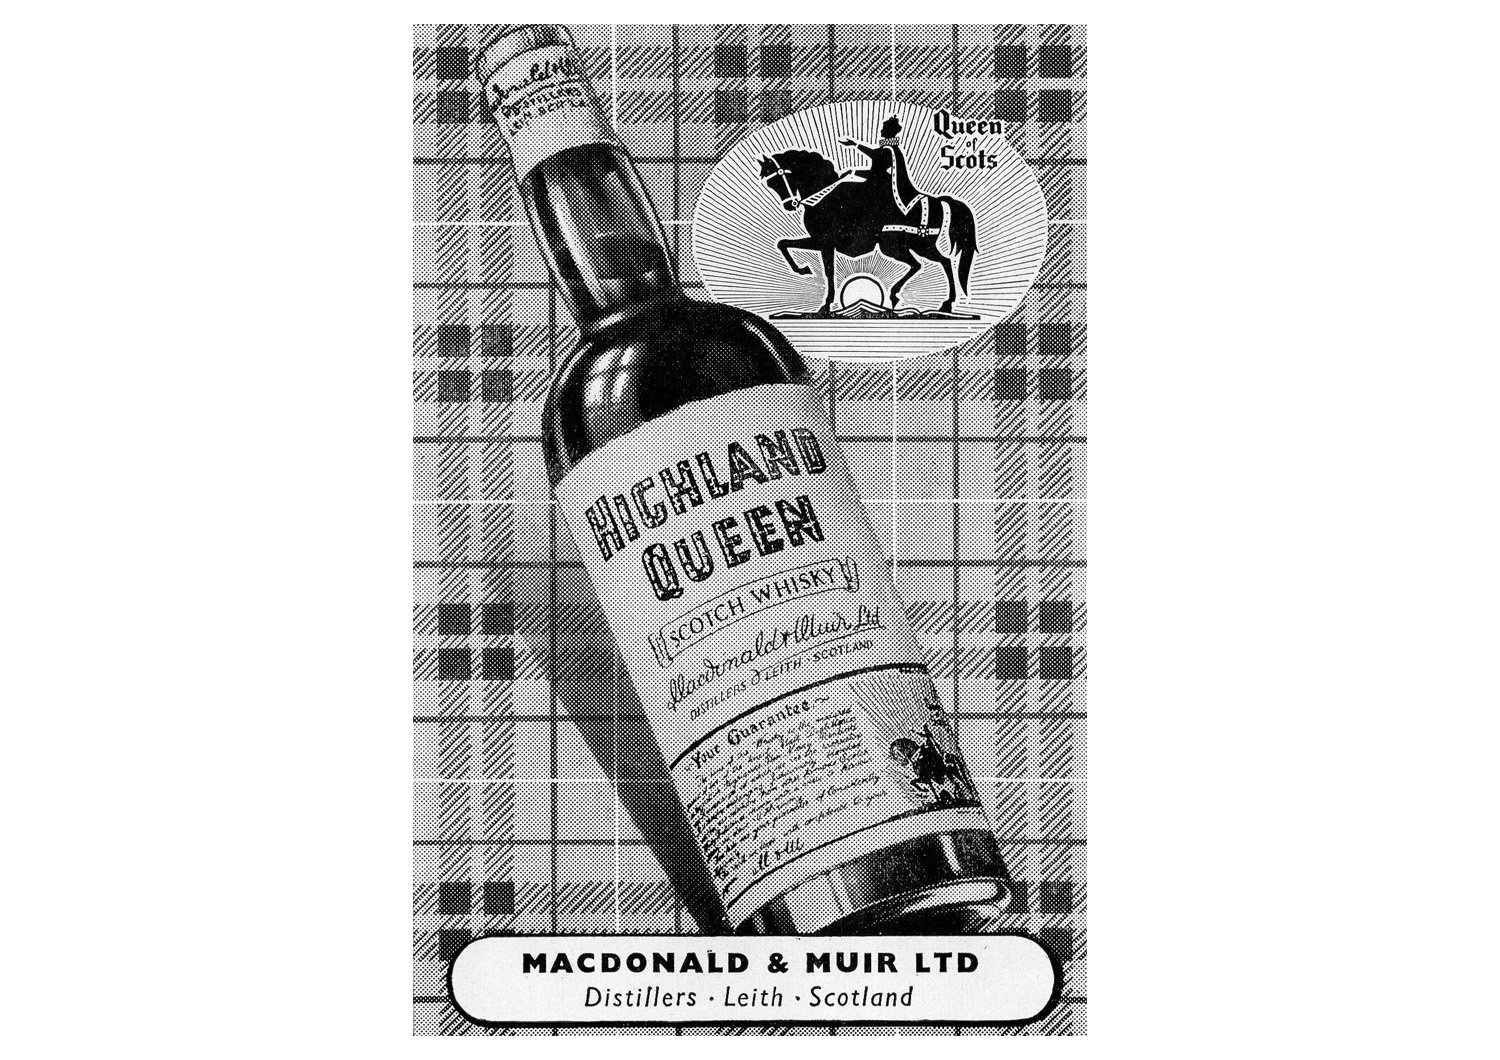 MacDonald & Muir - Macdonald & Muir of Leith, a wine and spirits merchant founded in 1893, produced two more brands famously associated with Leith: Bailie Nichol Jarvie and Highland Queen, the latter a celebration of Mary, Queen of Scot's arrival in Leith in 1561.